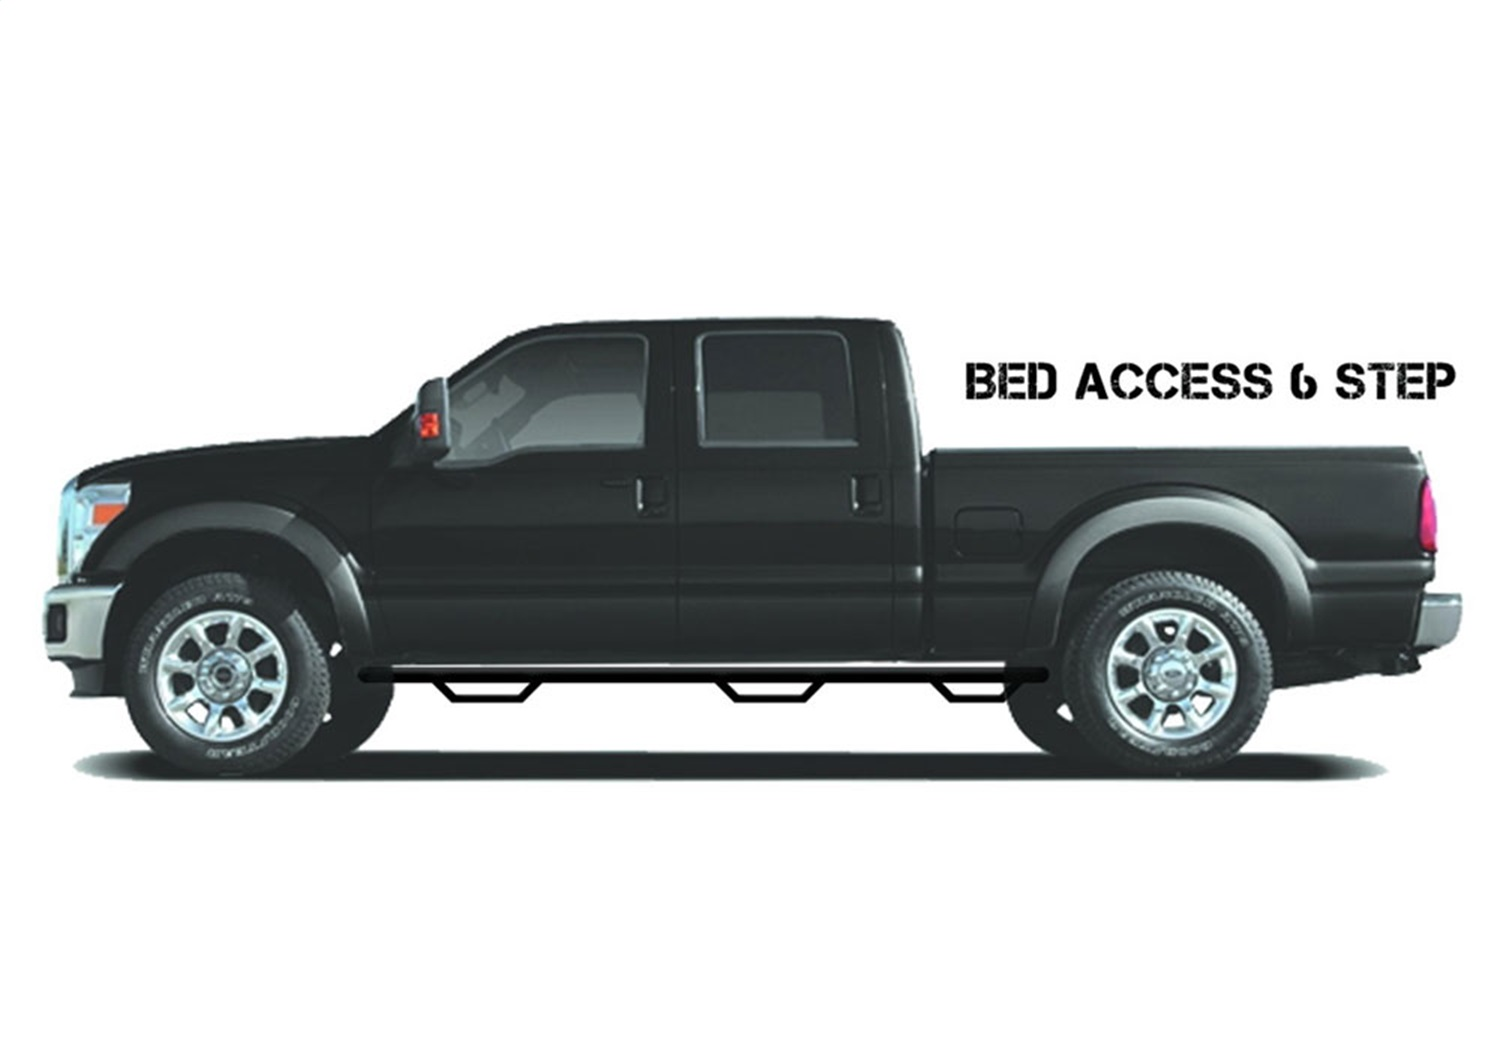 Wheel To Wheel Nerf Step Bar w/Bed Access, Textured Black, 6 Step, Special Order